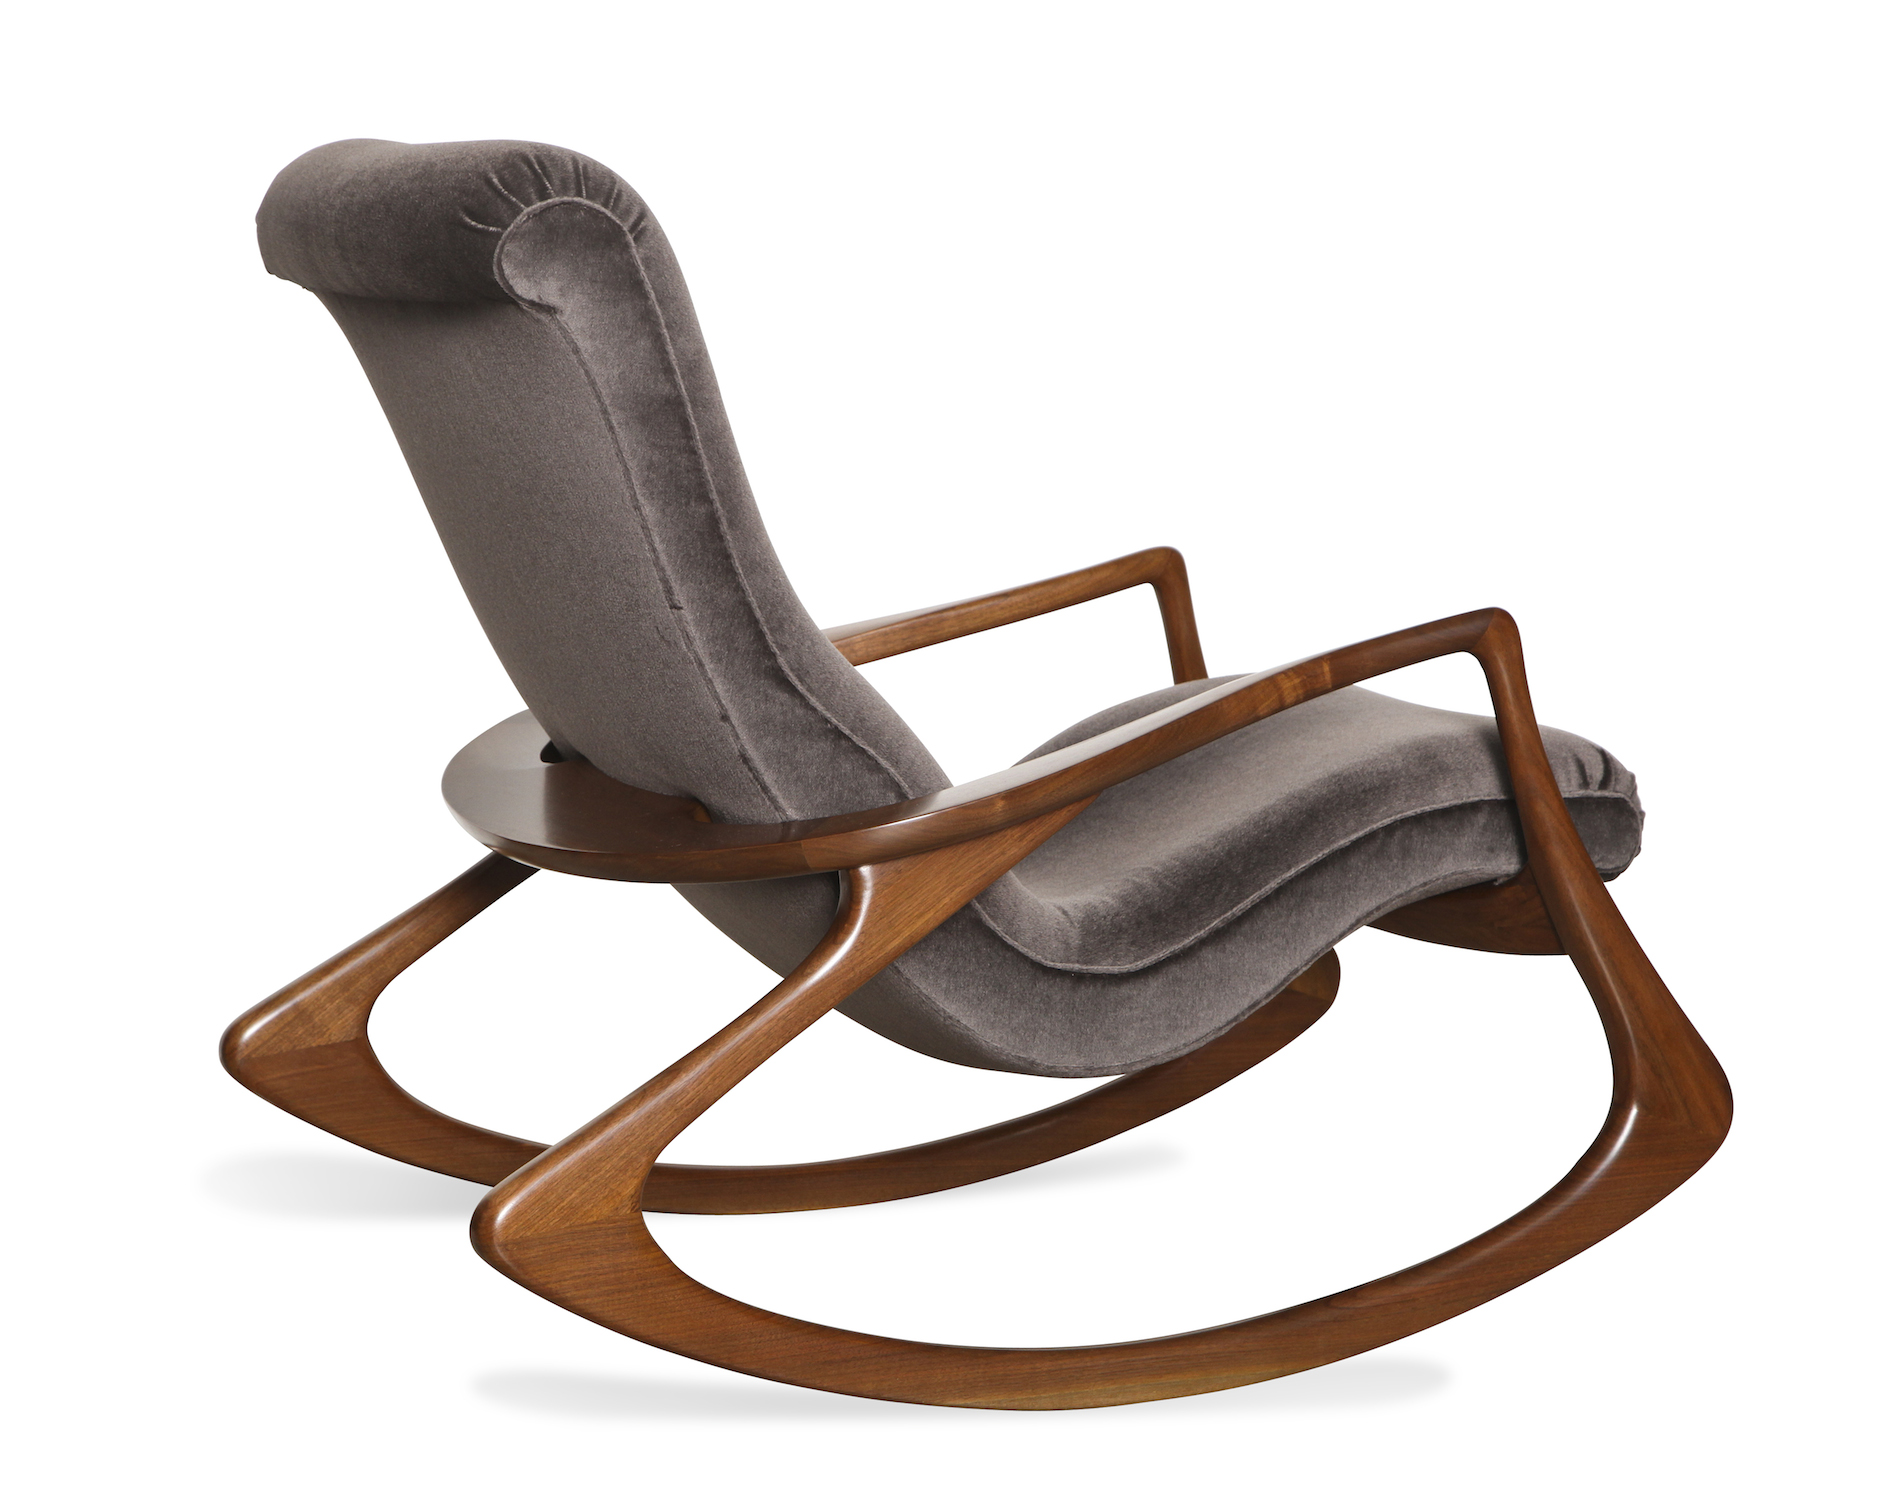 vladimir kagan rocking chair extending round table and chairs contour by donzella